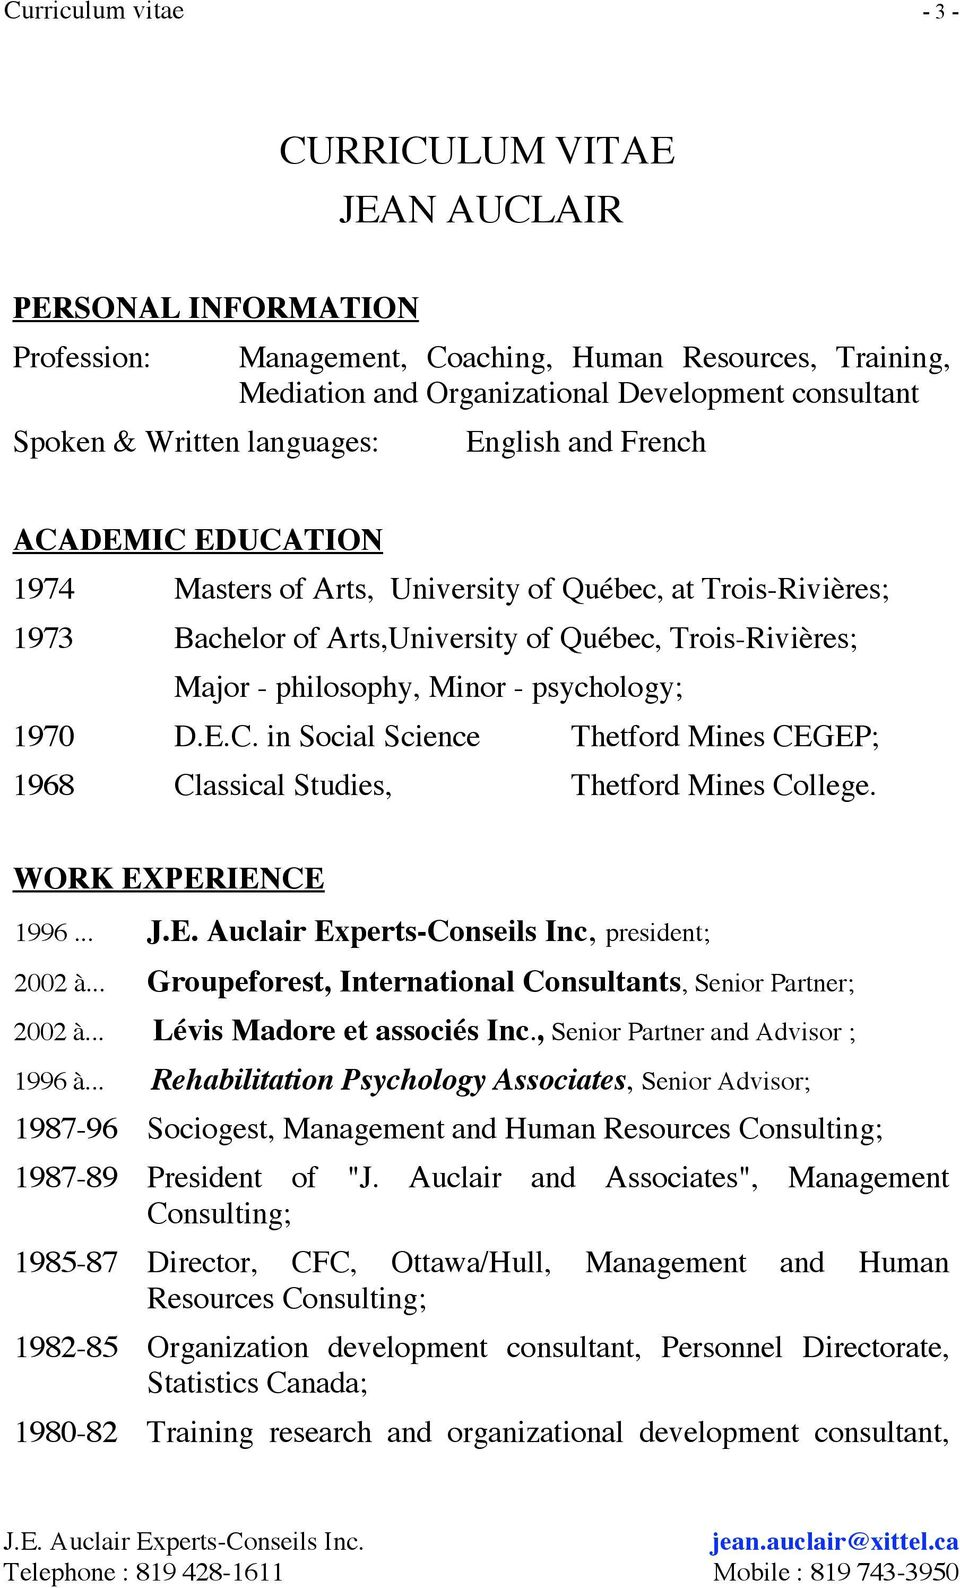 psychology; 1970 D.E.C. in Social Science Thetford Mines CEGEP; 1968 Classical Studies, Thetford Mines College. WORK EXPERIENCE 1996... J.E. Auclair Experts-Conseils Inc, president; 2002 à.